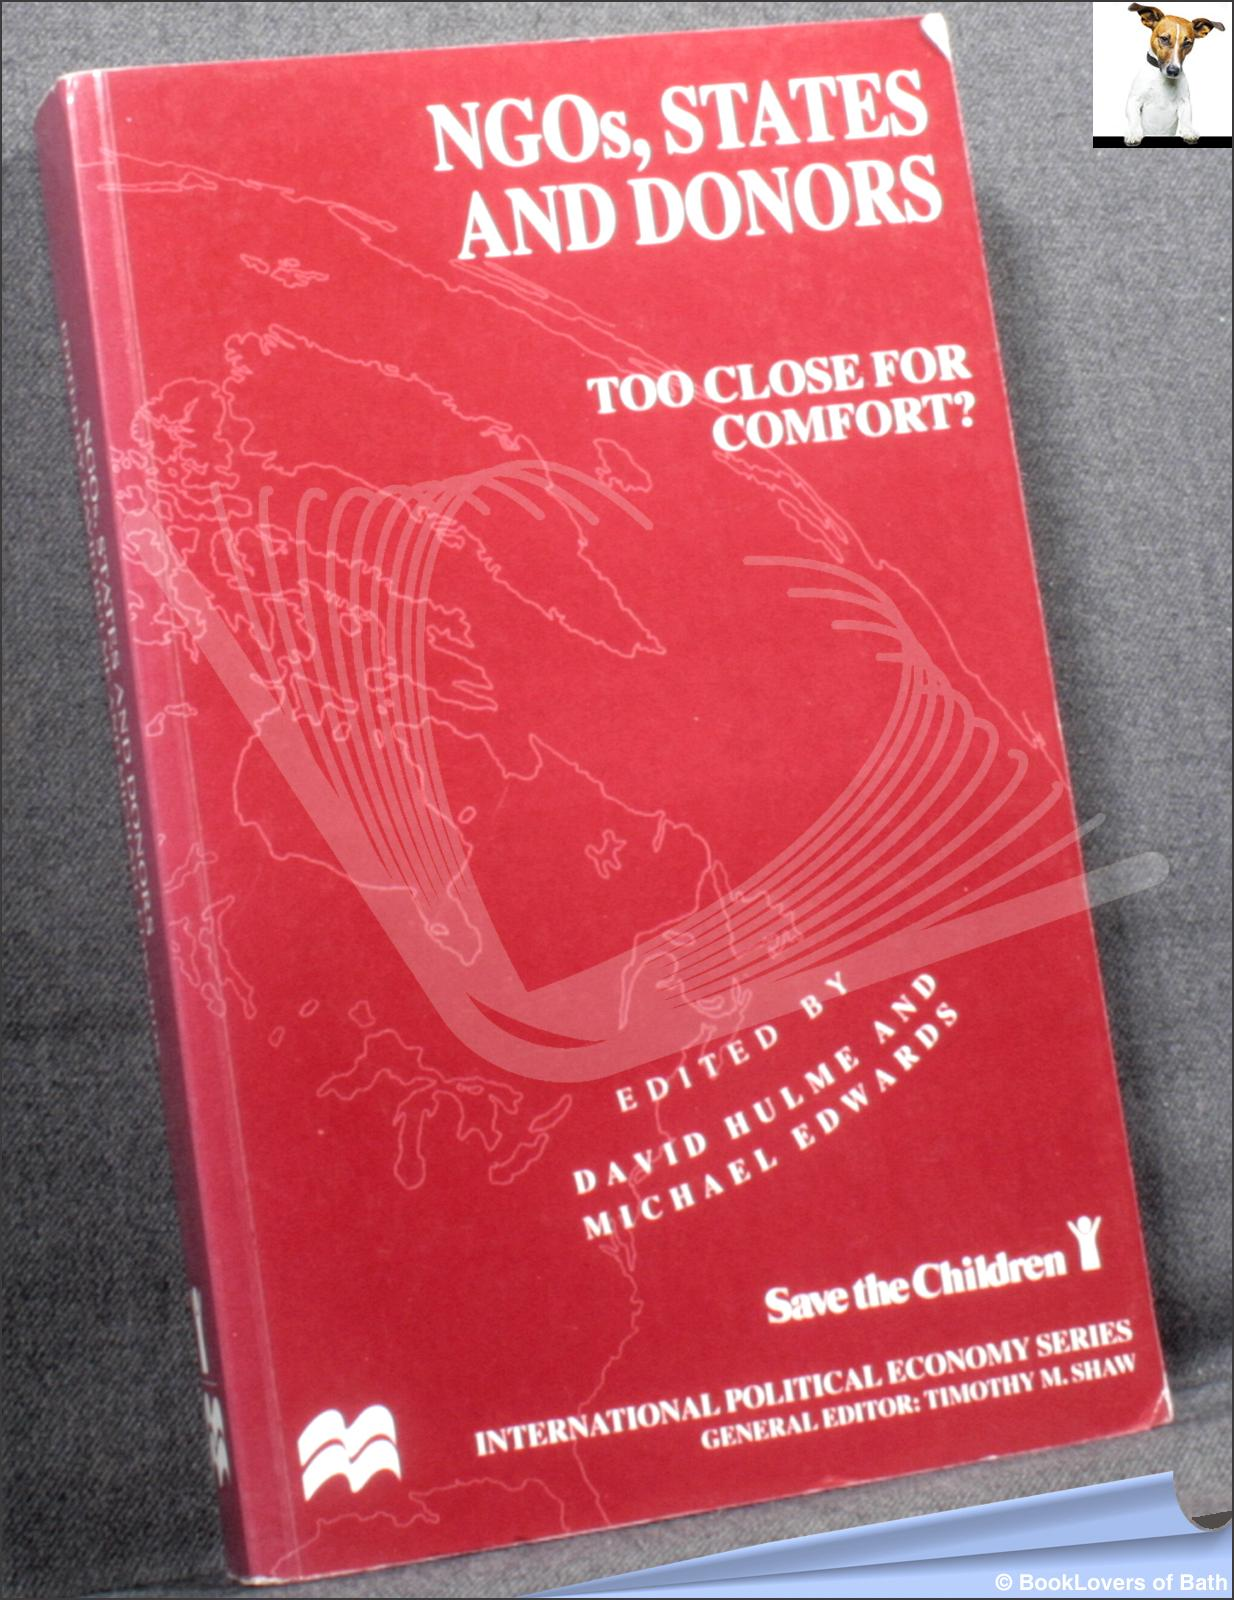 NGOs, States and Donors: Too Close for Comfort? - Edited by David Hulme & Michael Edwards